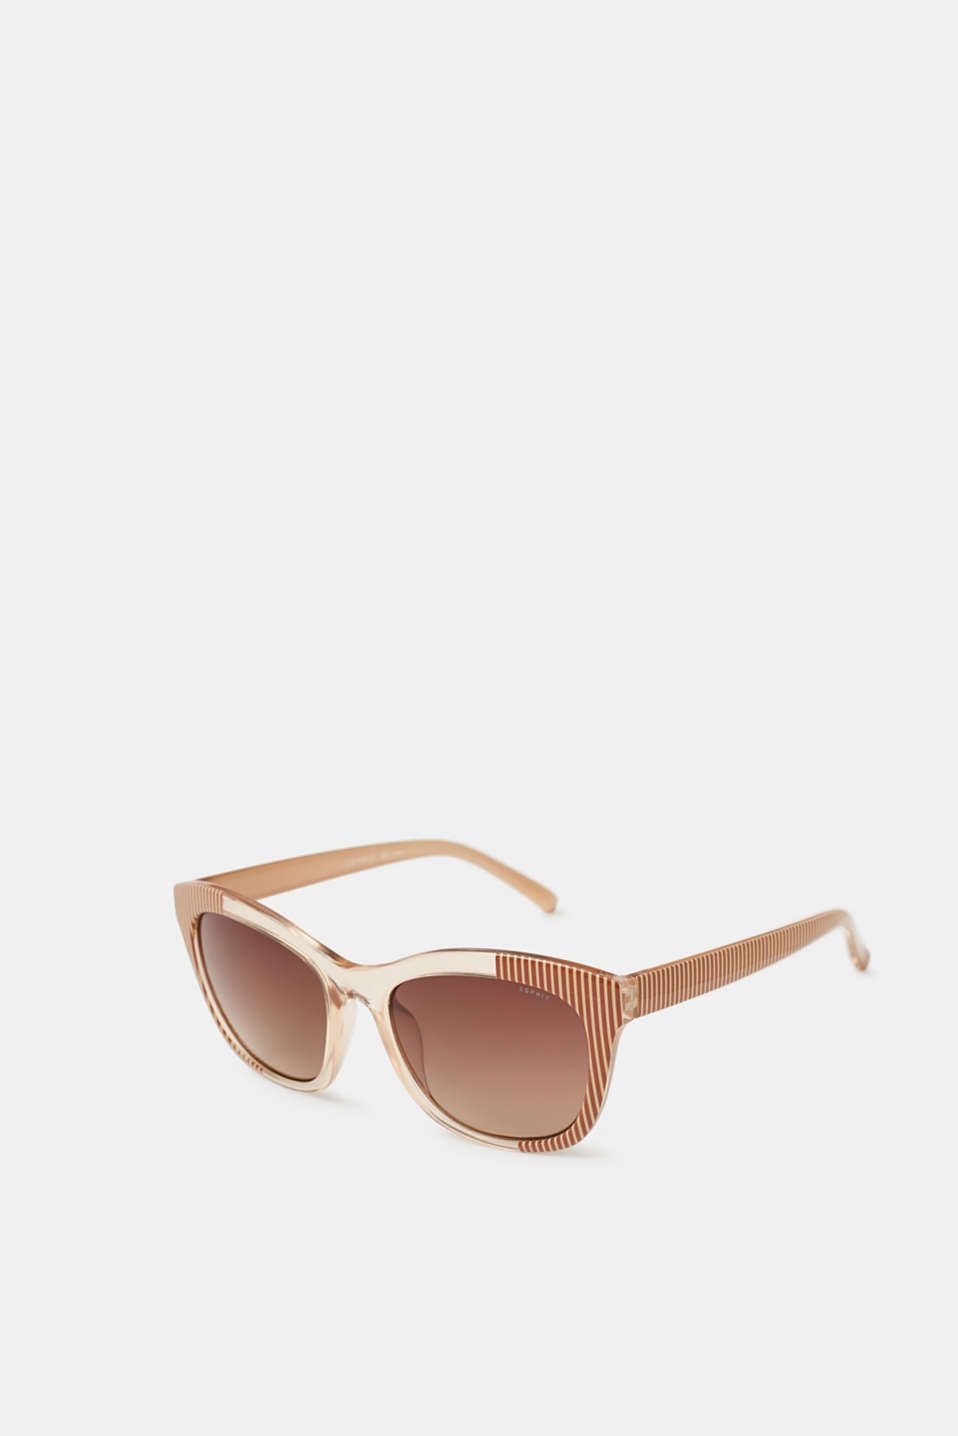 Esprit - Sunglasses with a striped pattern